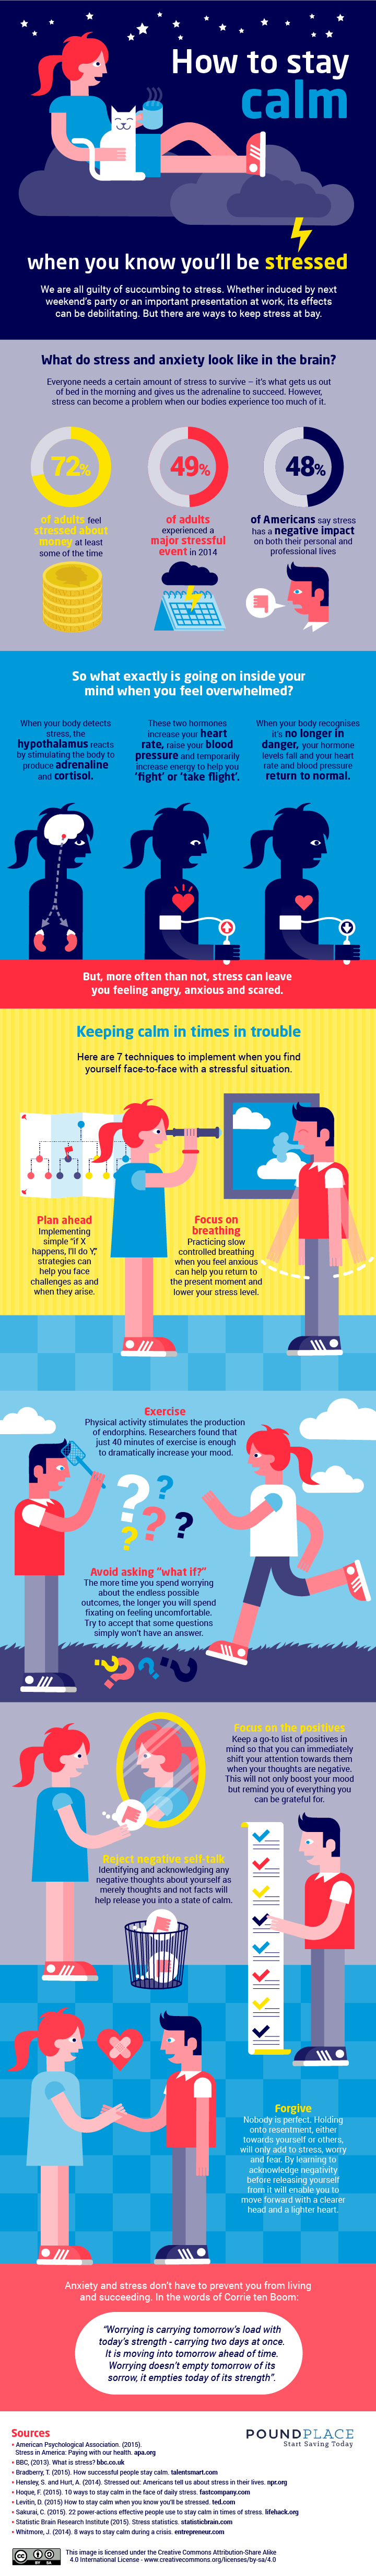 Top tips to staying stress free in the workplace infographic - How To Stay Calm Under Pressure Infographic Ways To Manage Stressways